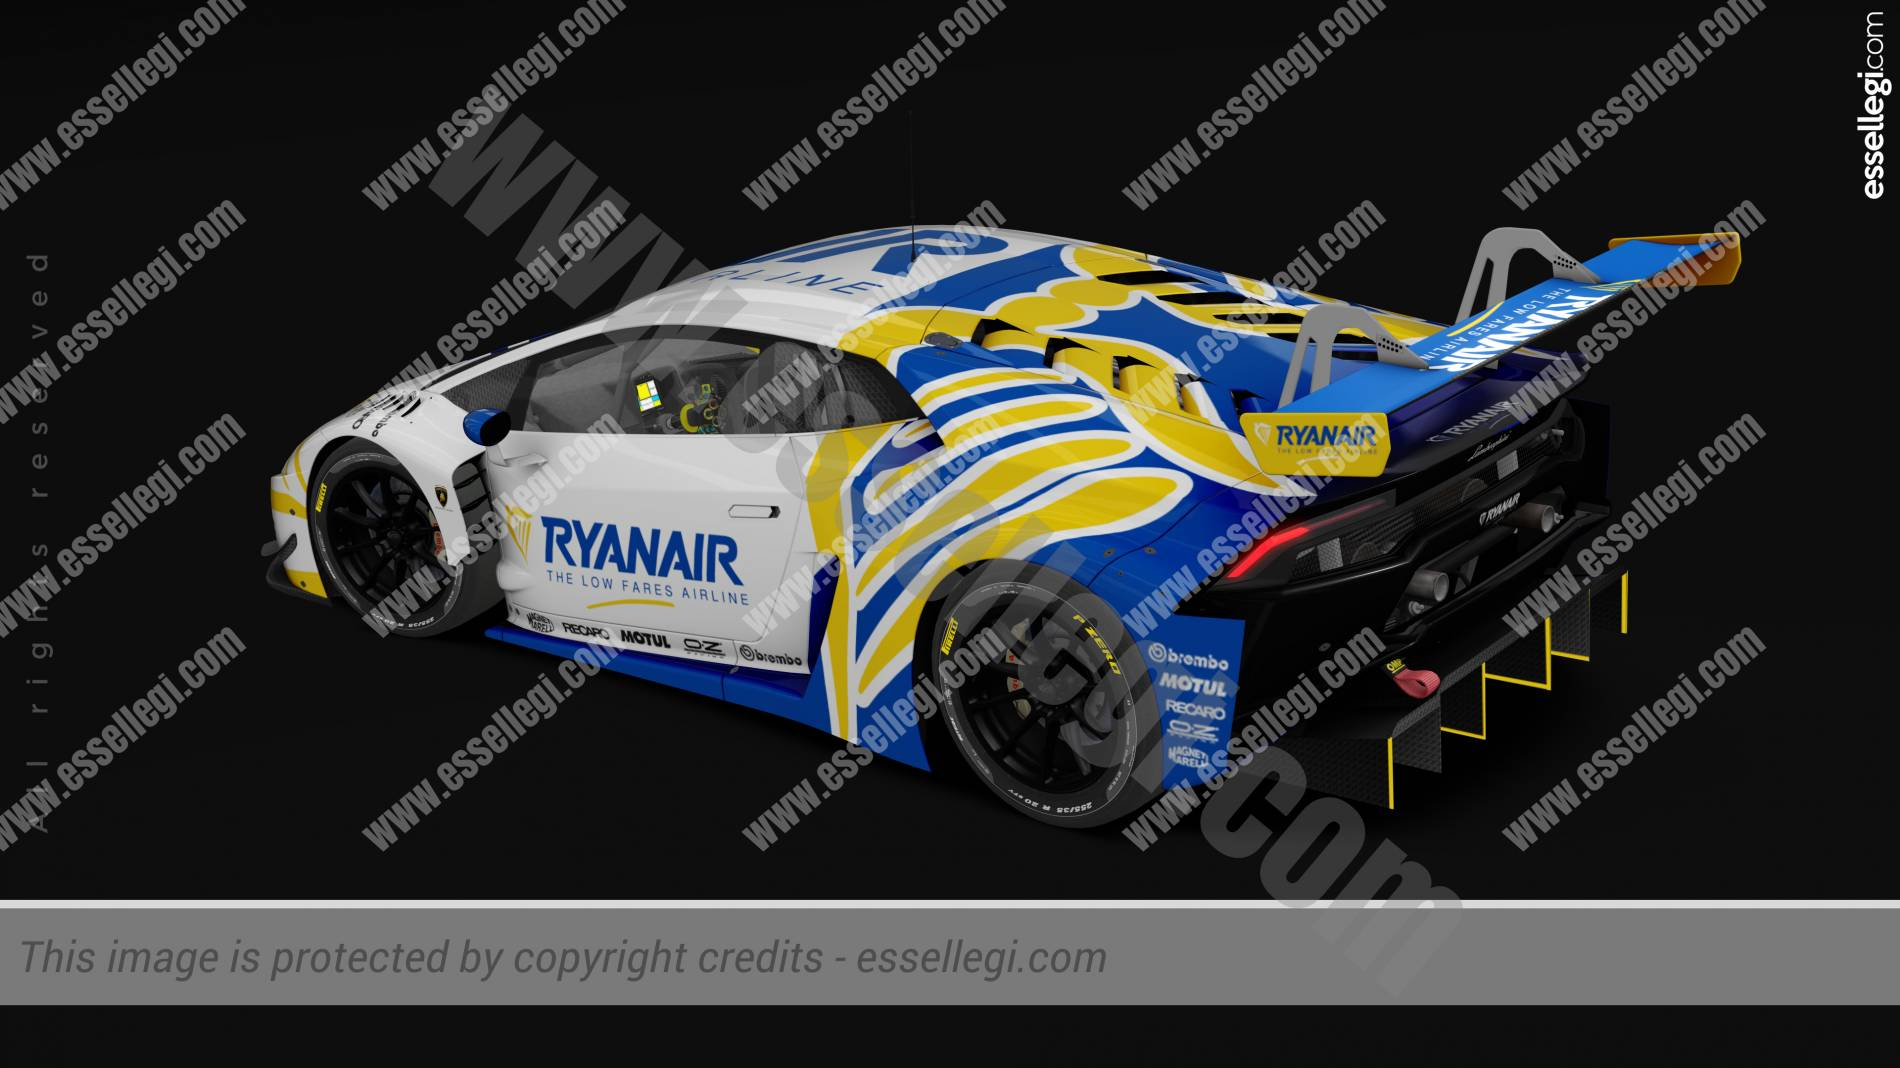 Best Motorsport Livery Design for Race/Racing Cars by Essellegi